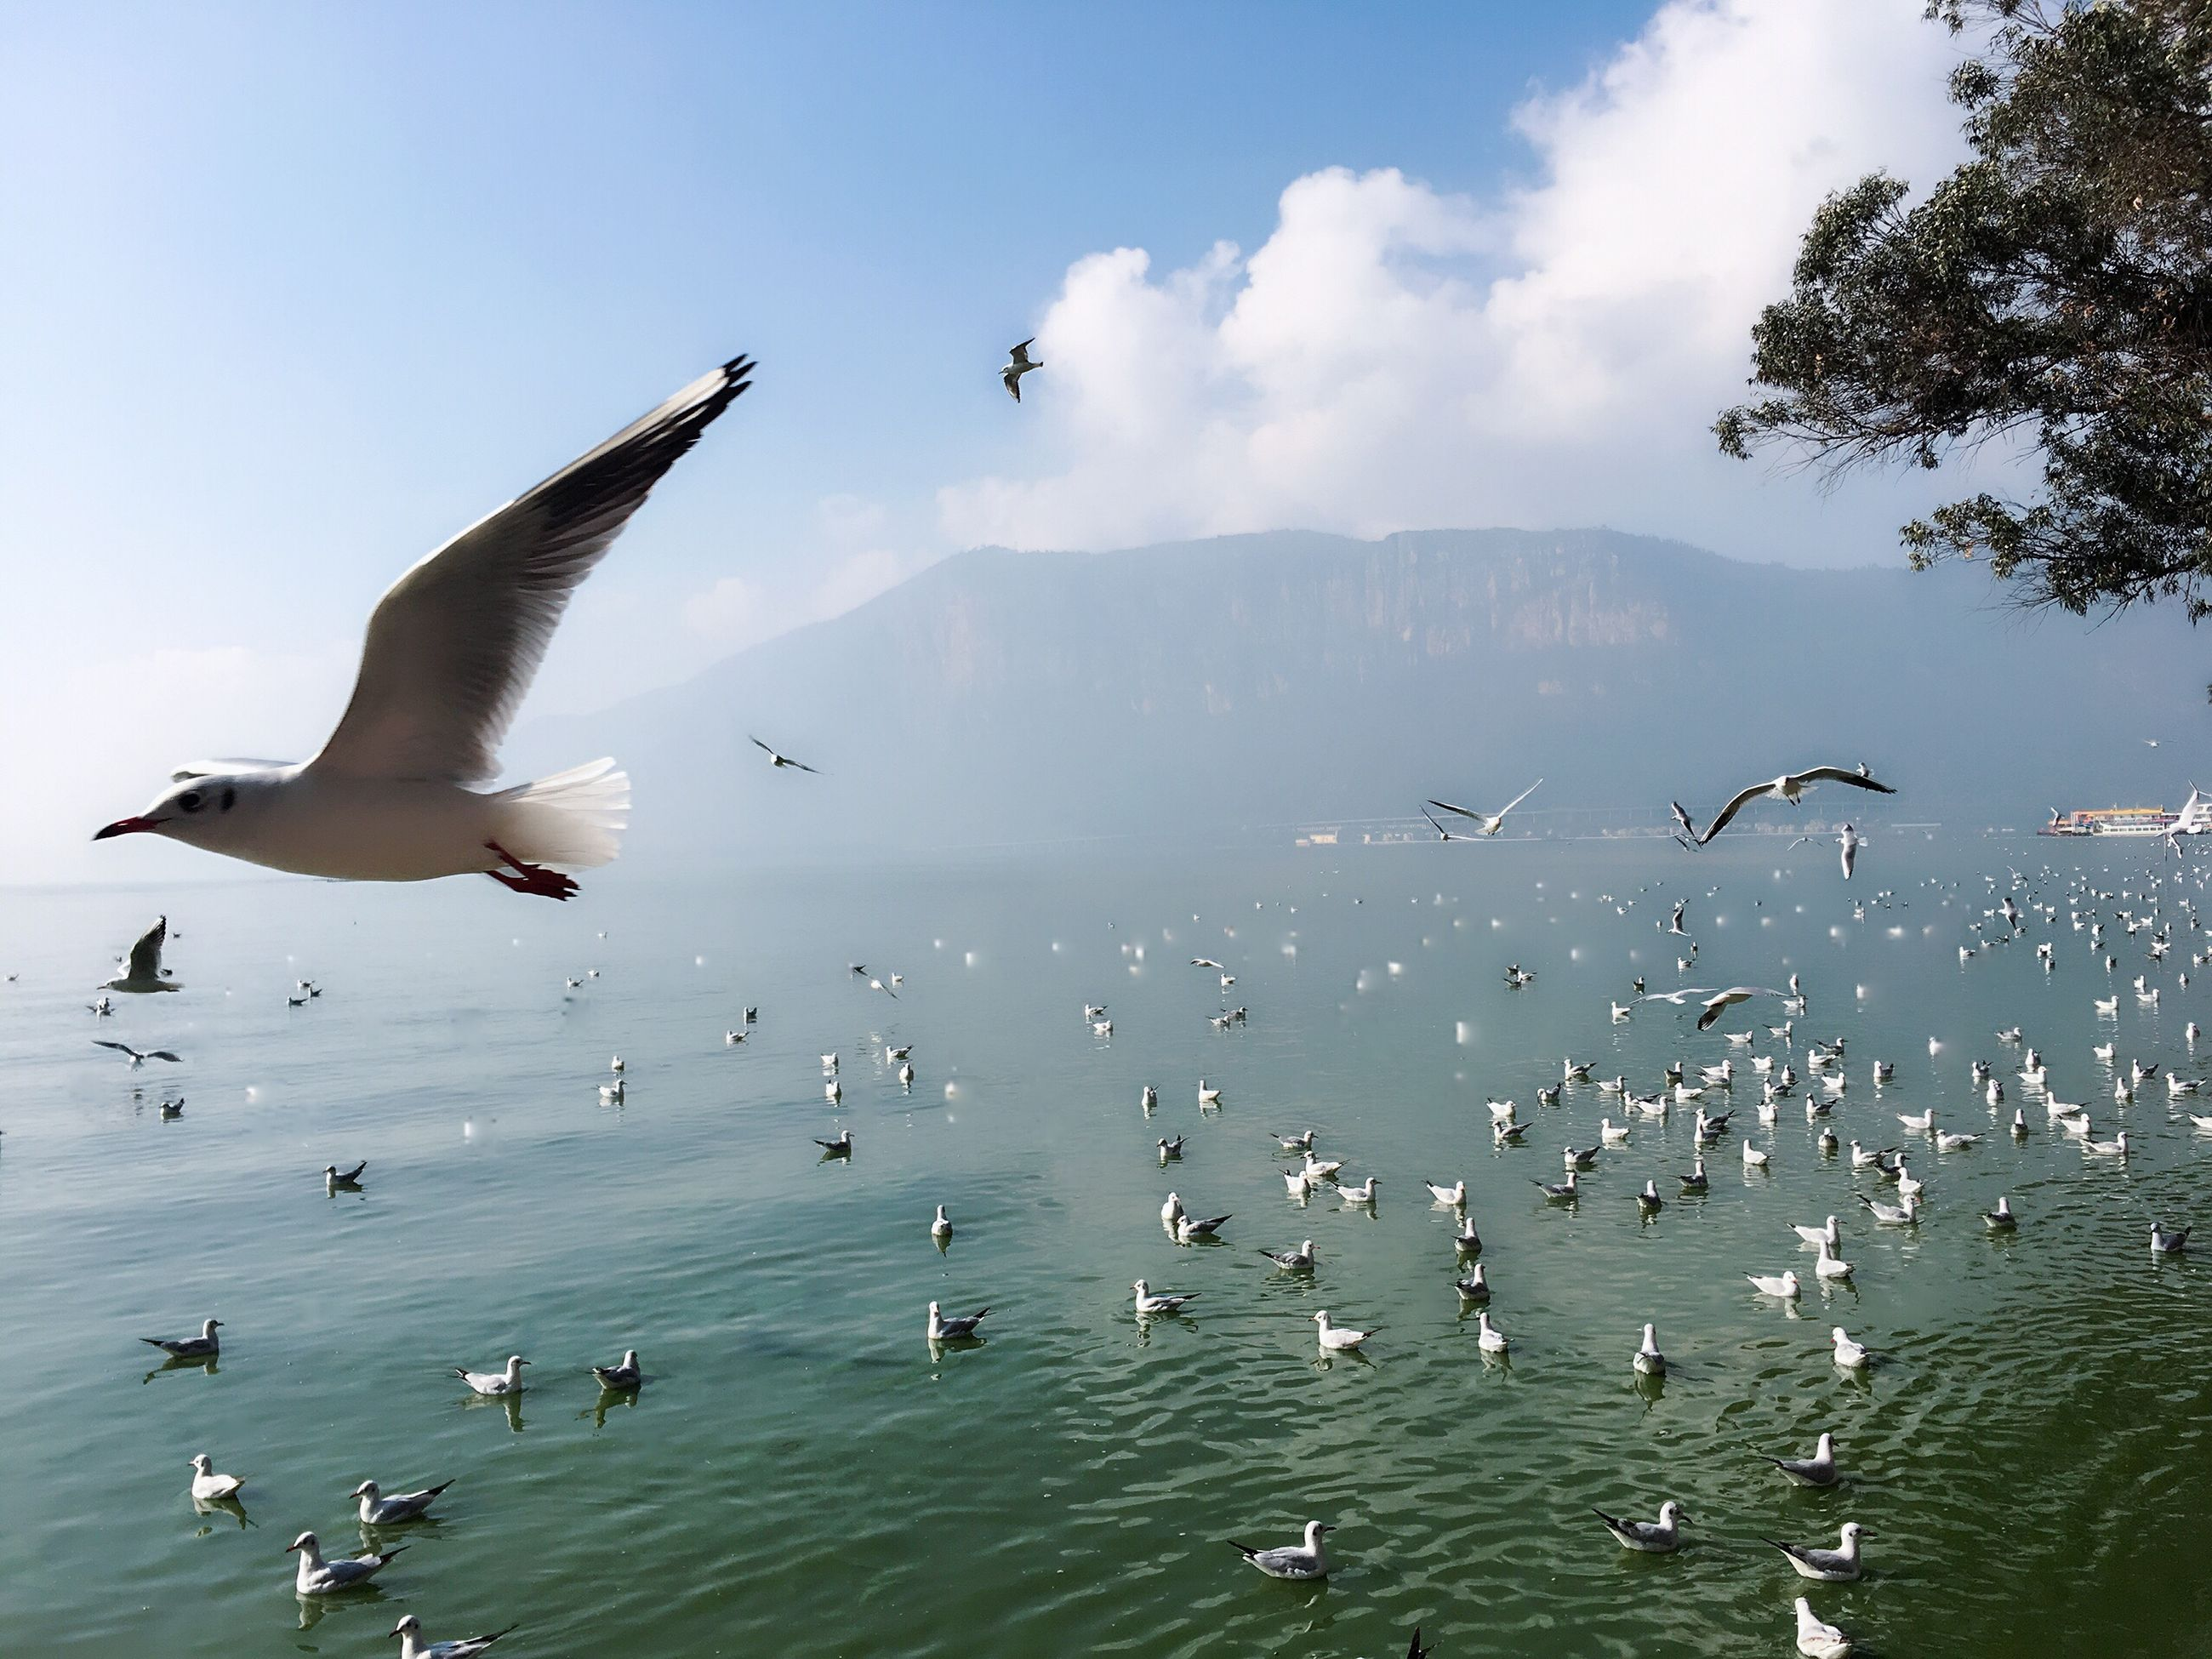 flying, bird, animal themes, animals in the wild, mid-air, sky, animal wildlife, nature, large group of animals, outdoors, cloud - sky, water, spread wings, flock of birds, animal behavior, beauty in nature, day, no people, swimming, mammal